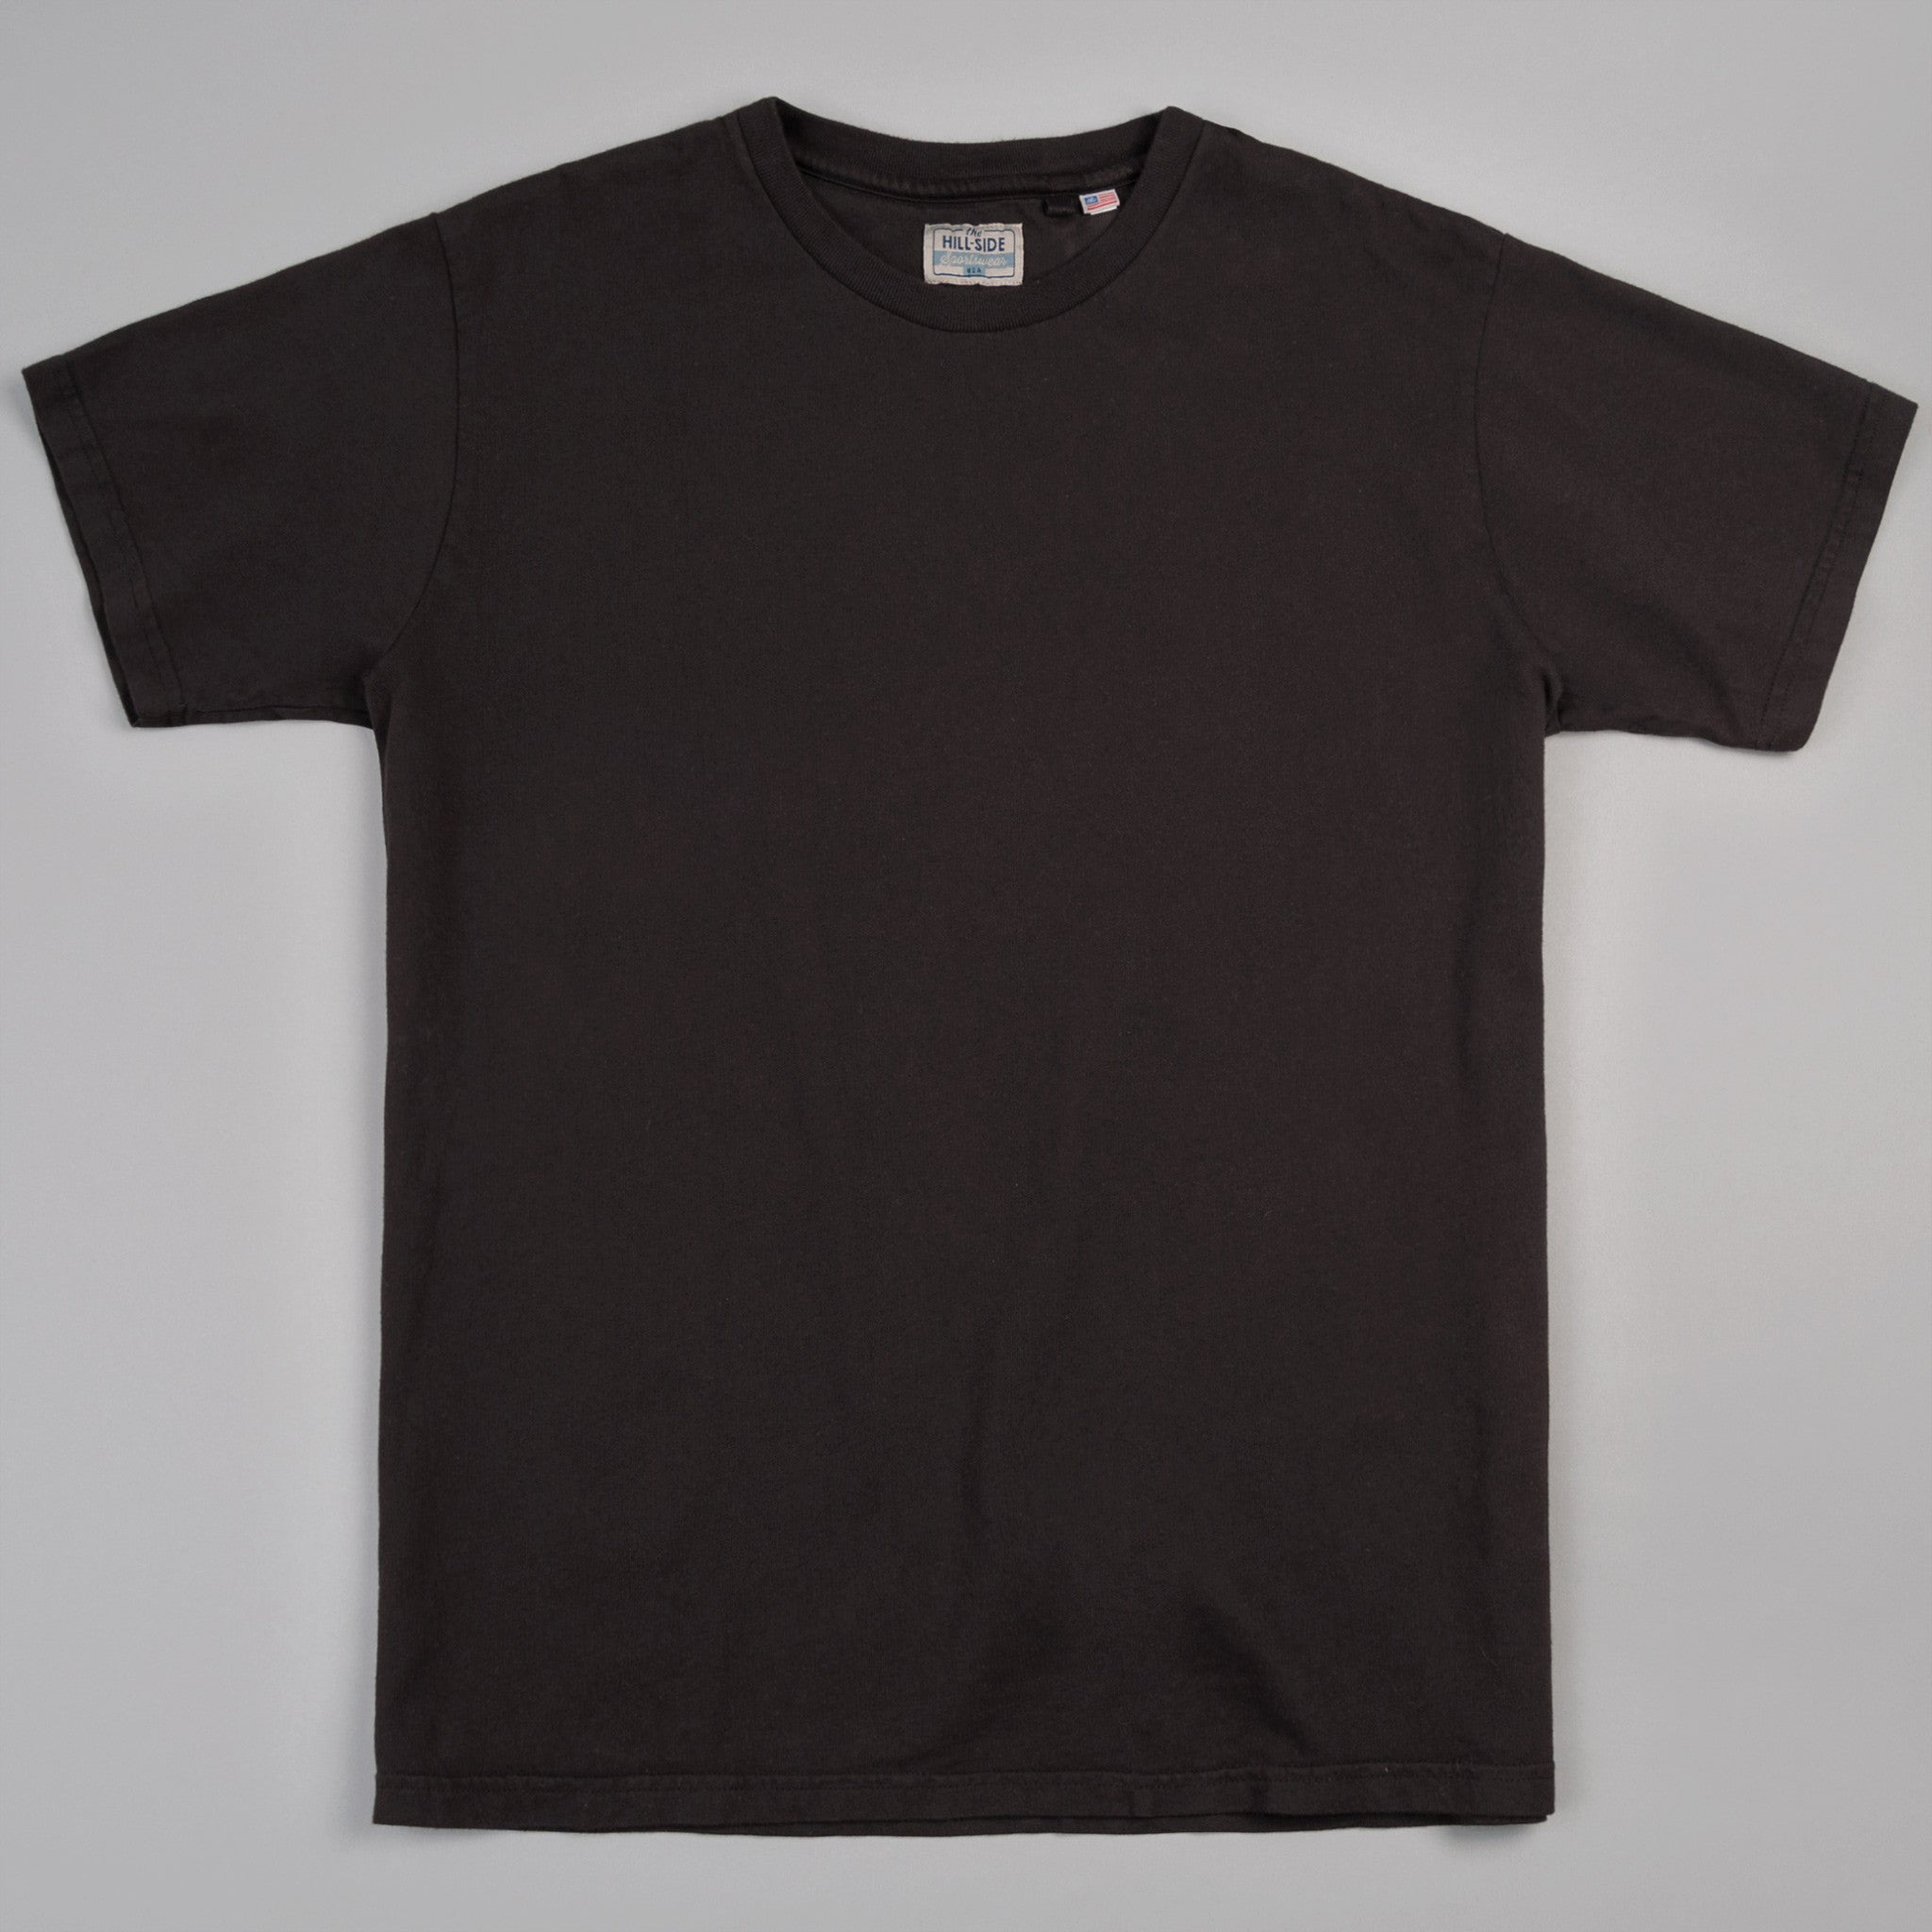 The Hill-Side - T-Shirt, Faded Black - TS1-0004